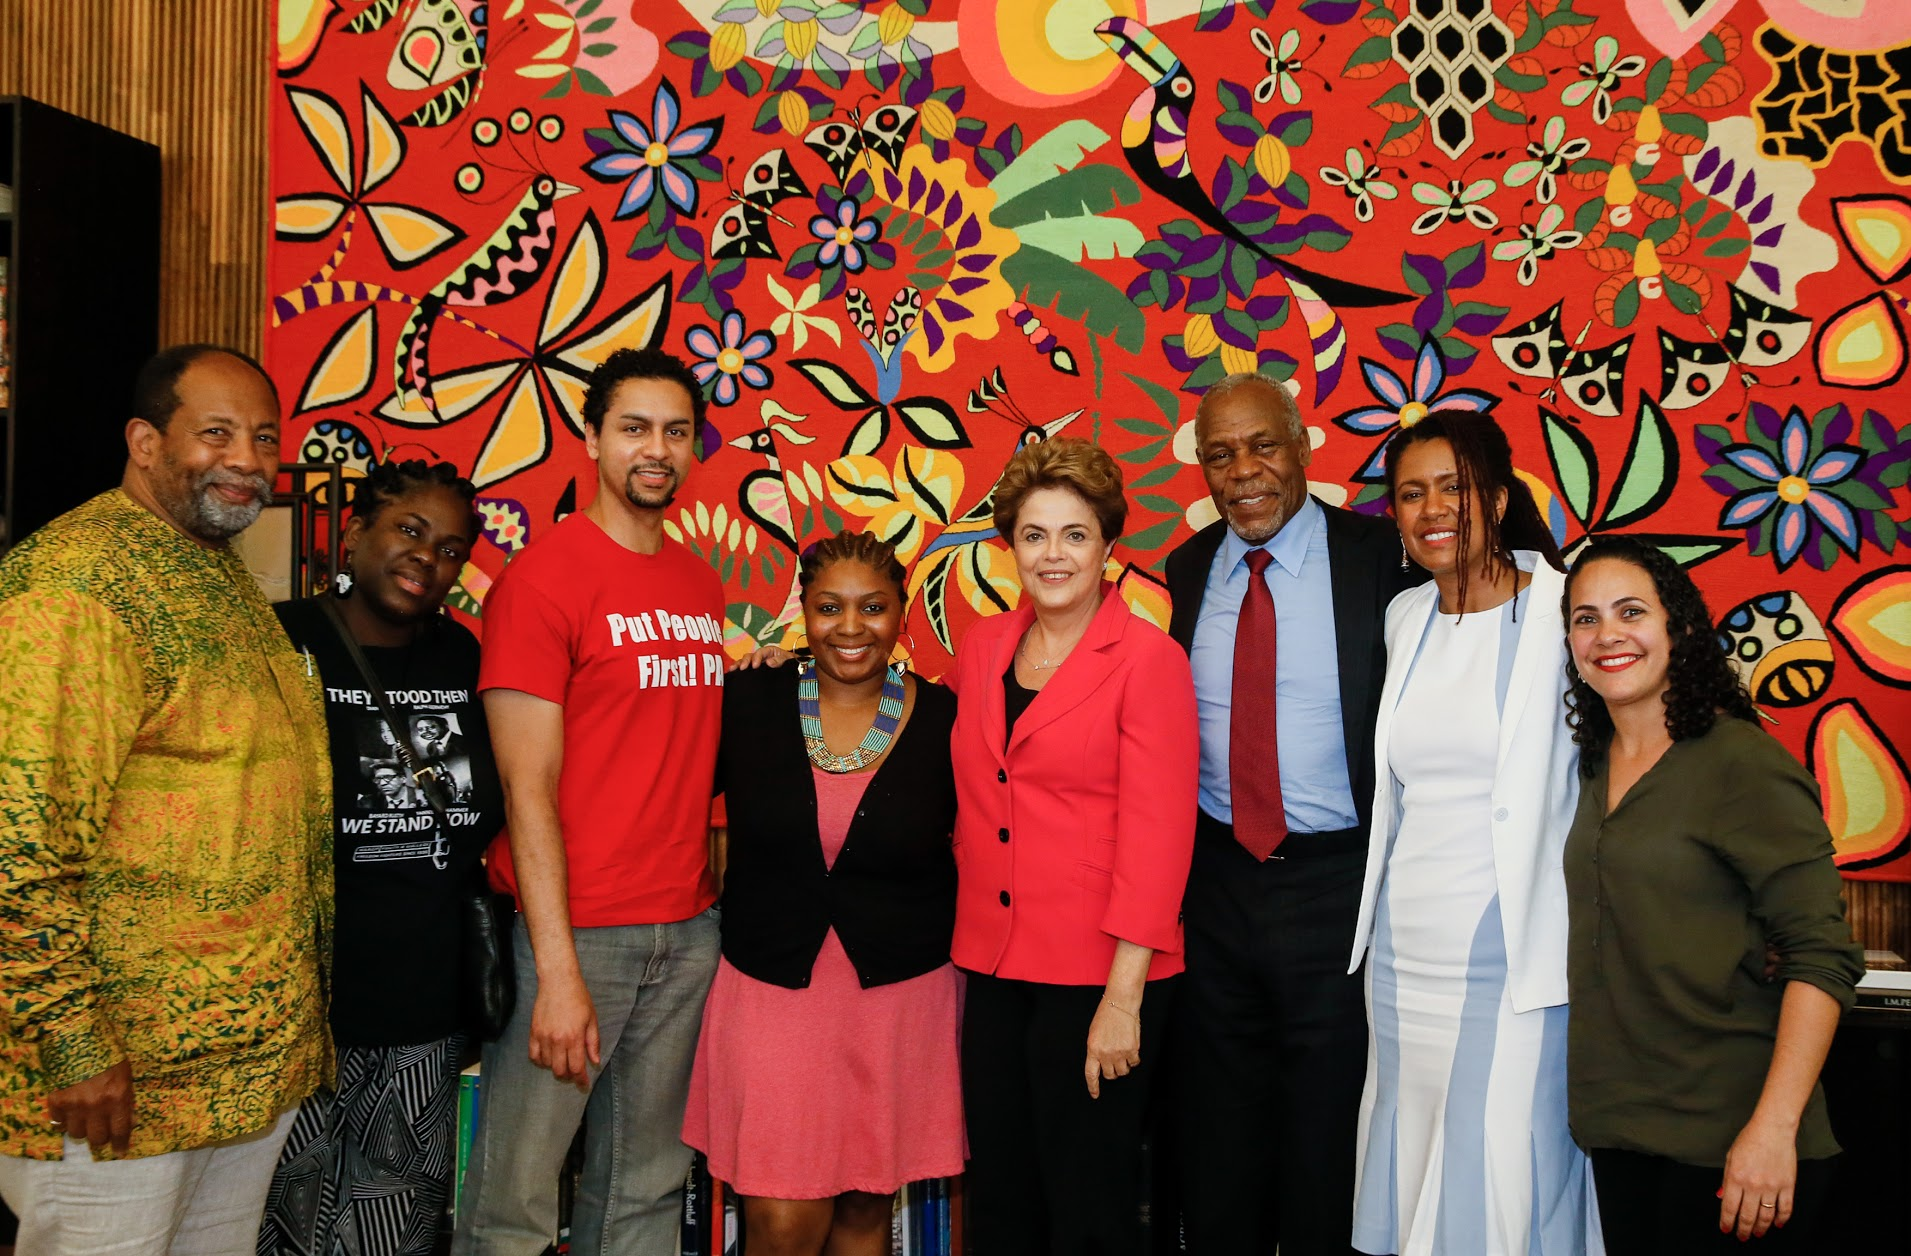 06/20/2016. Presidenta Dilma Rousseff durante Actor Danny Glover, Dr. Eliane Cavalleiro and others,